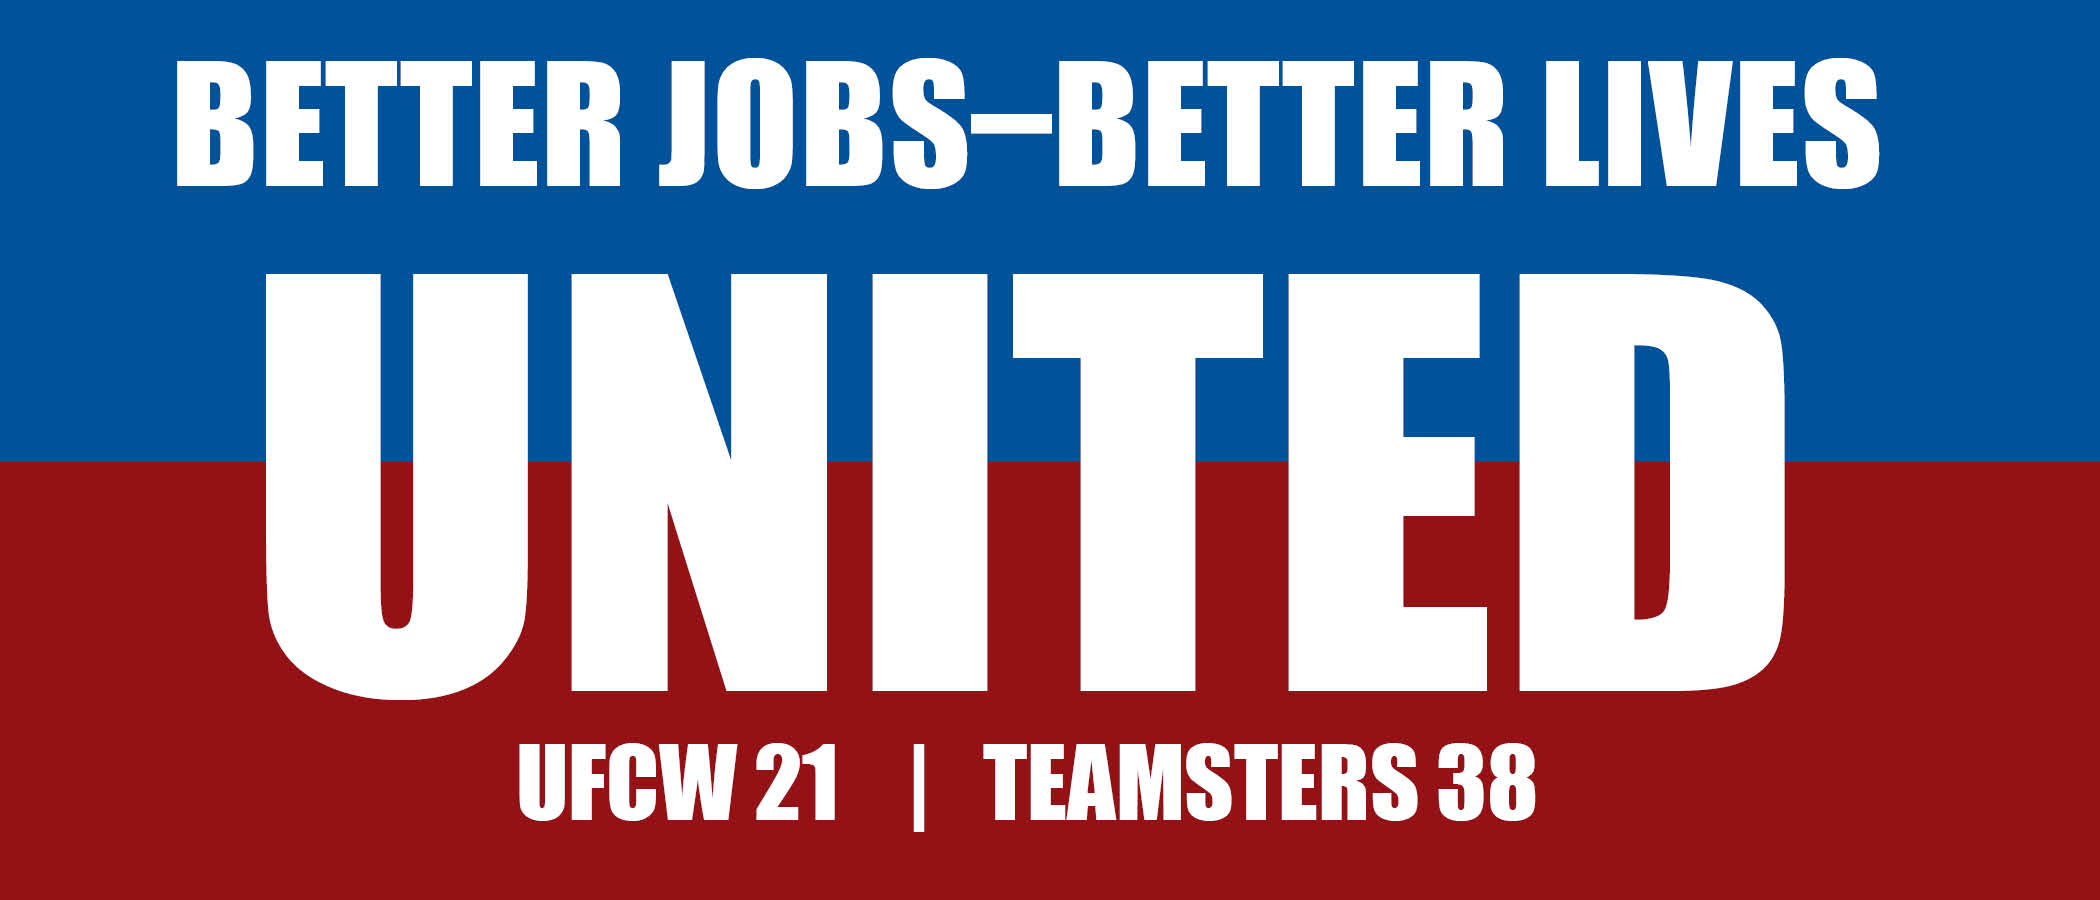 UNITED better jobs better lives graphic.jpg